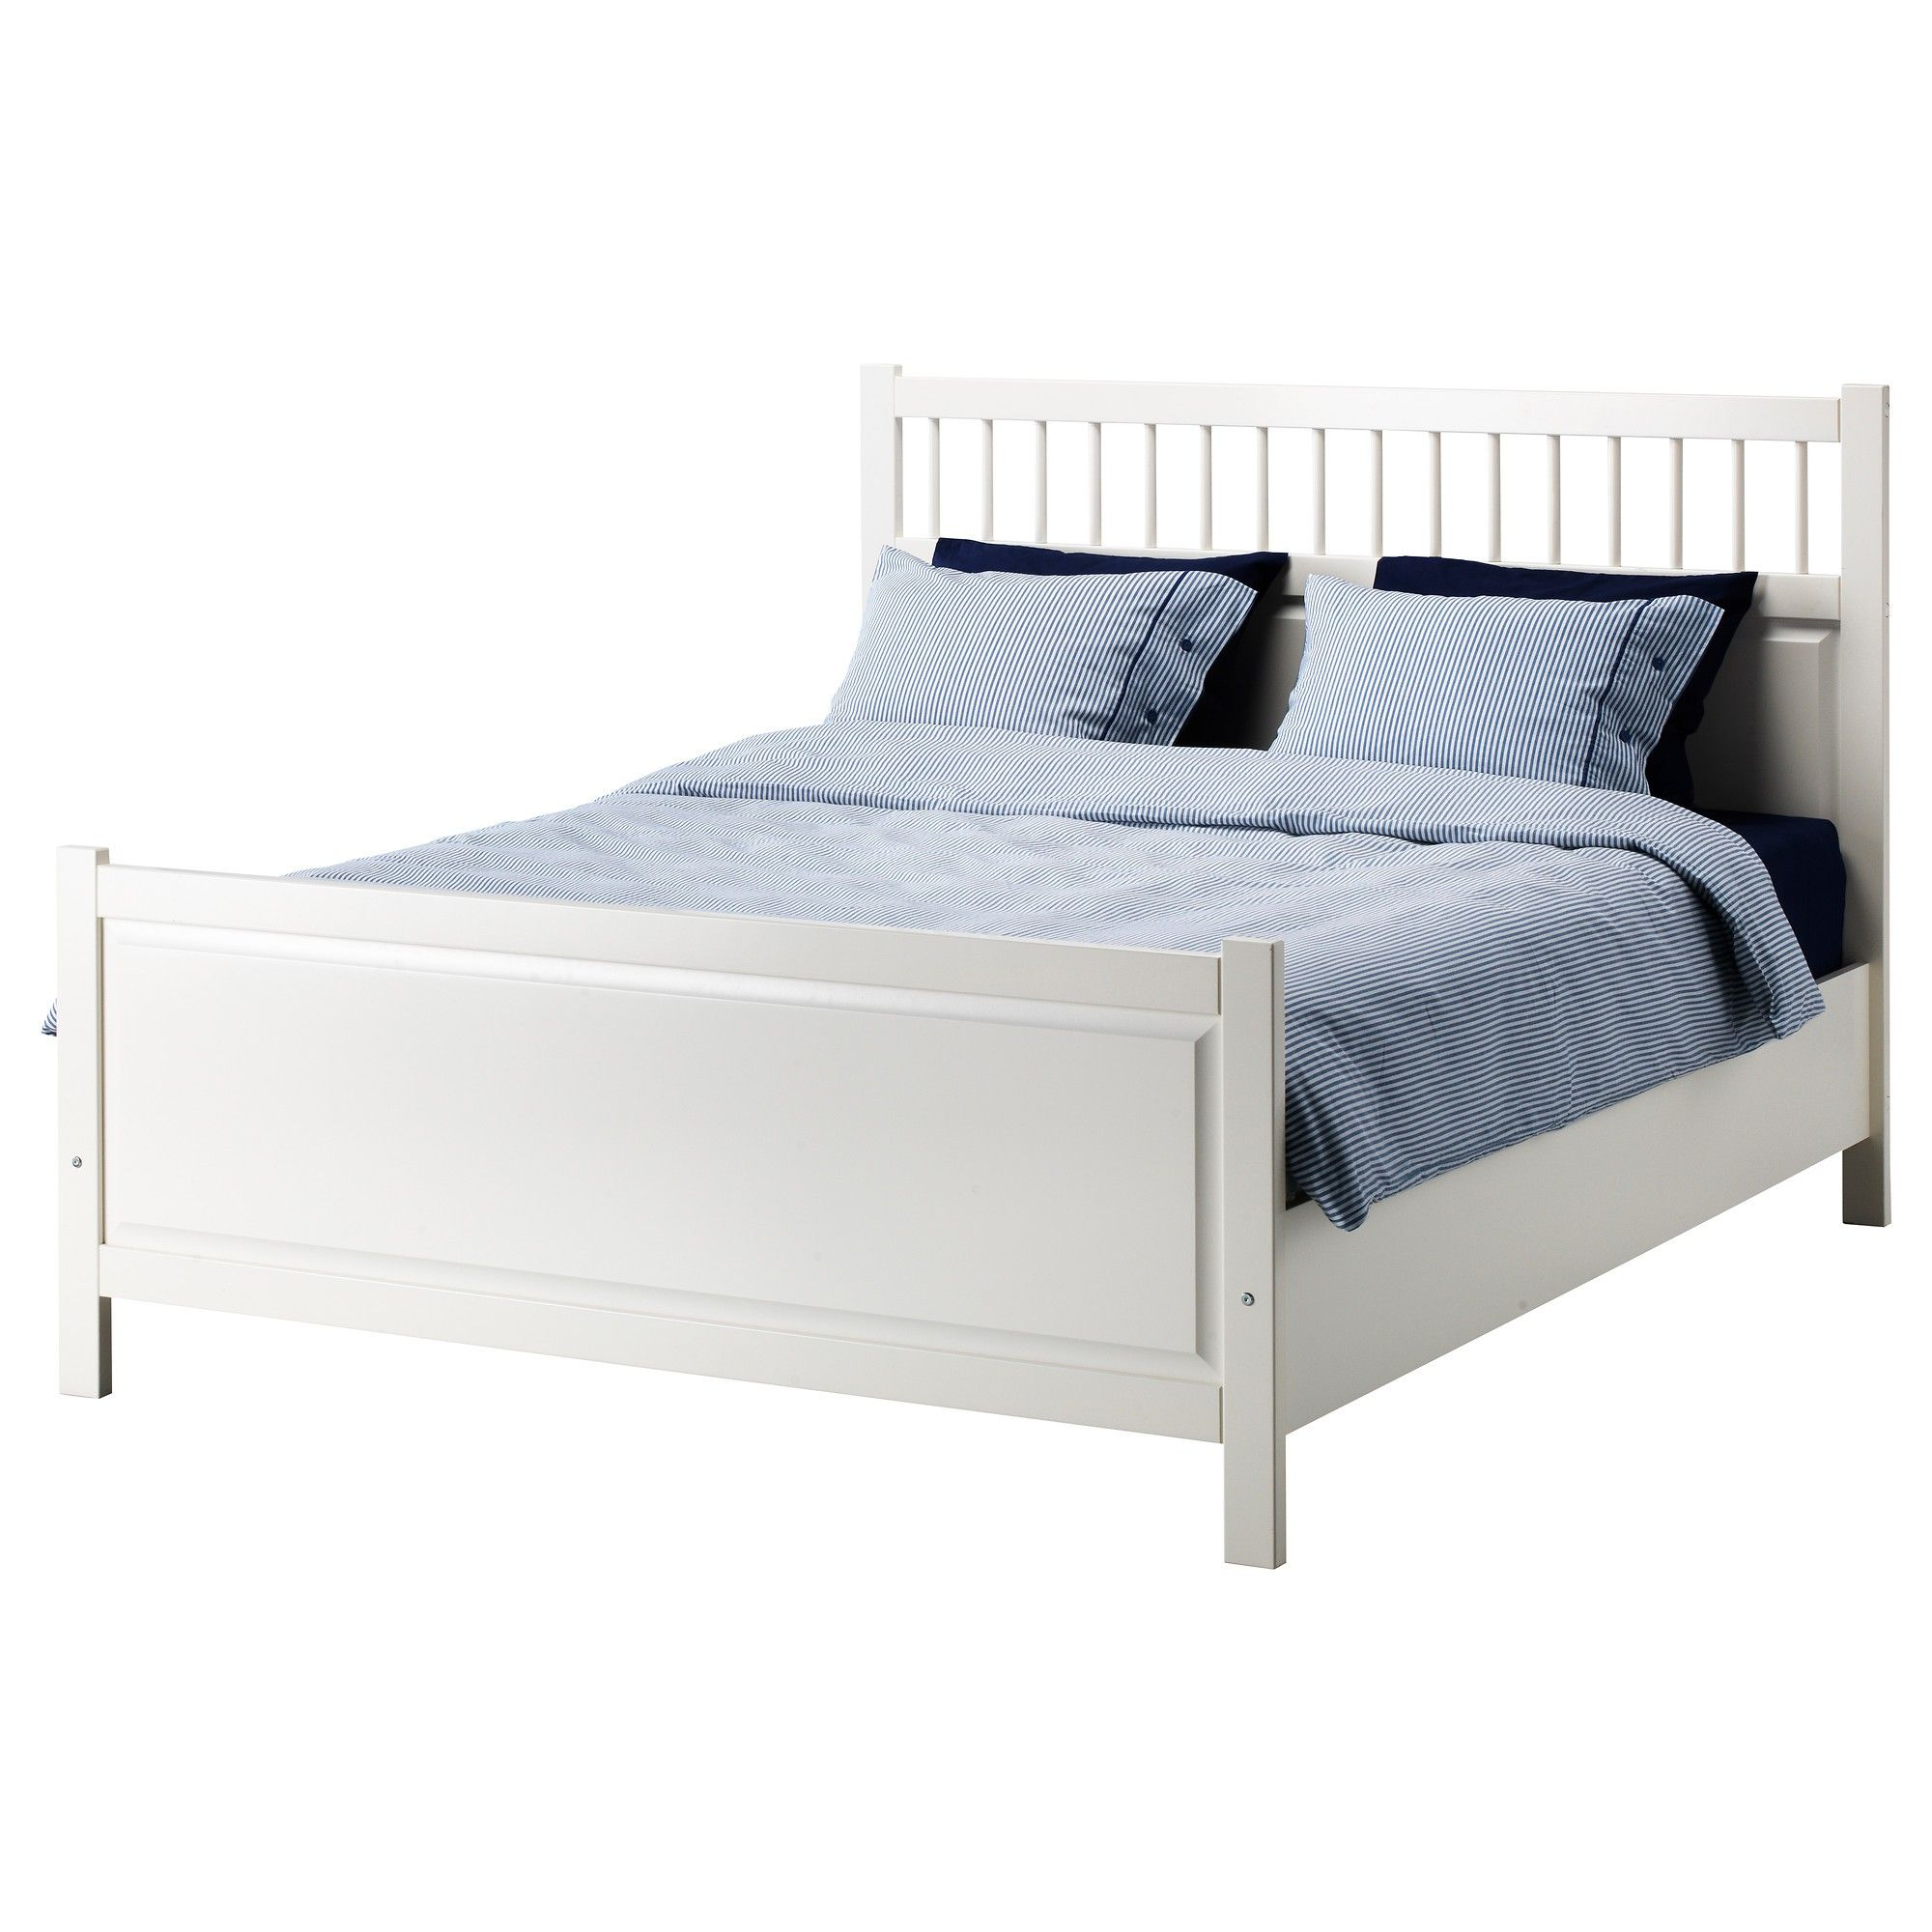 bed platform frames full base frame mattresshelp best smart org zinus